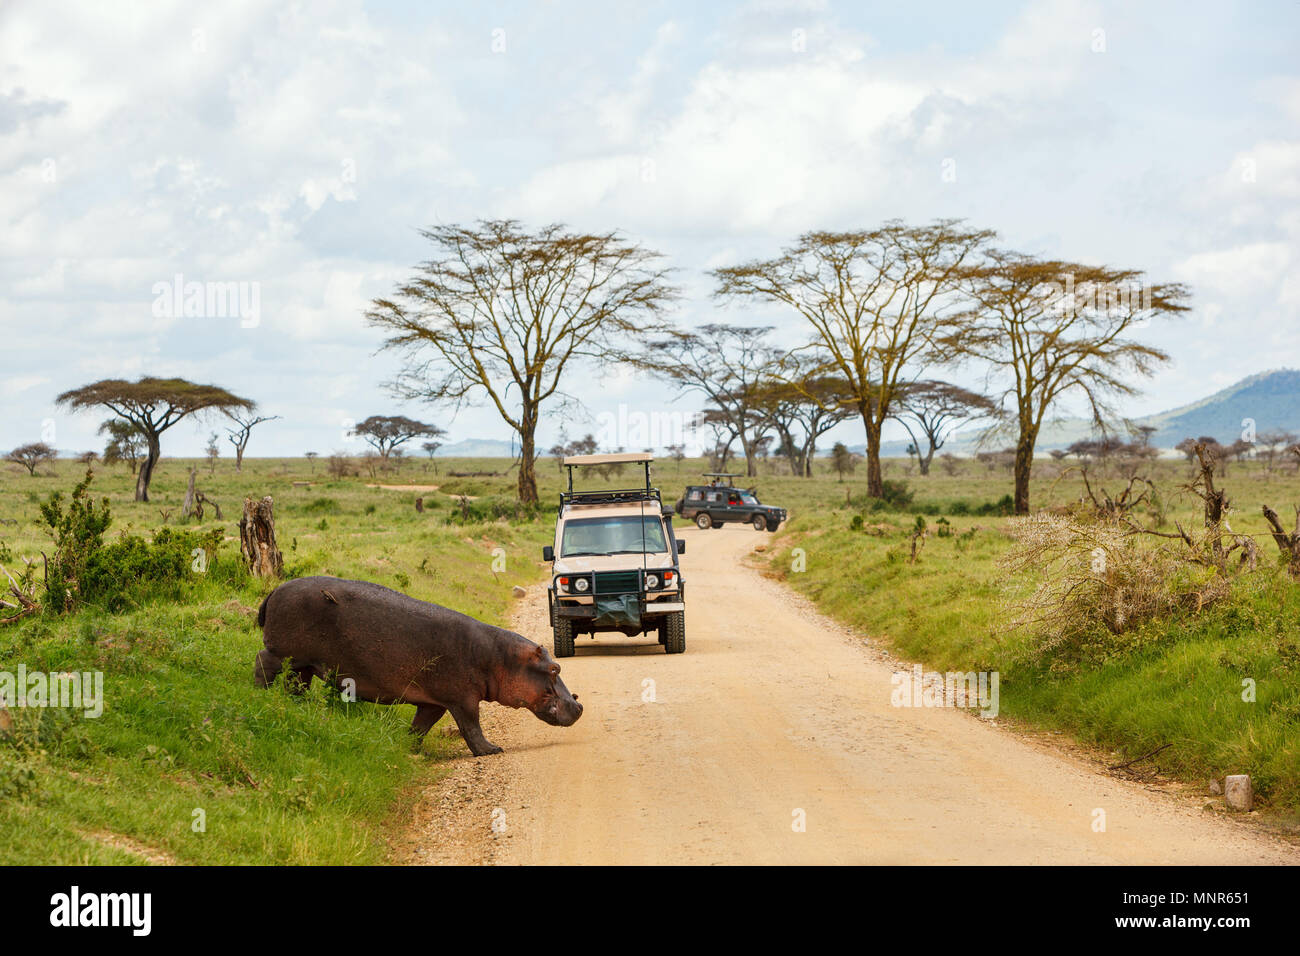 Safari cars on game drive with hippo crossing road - Stock Image